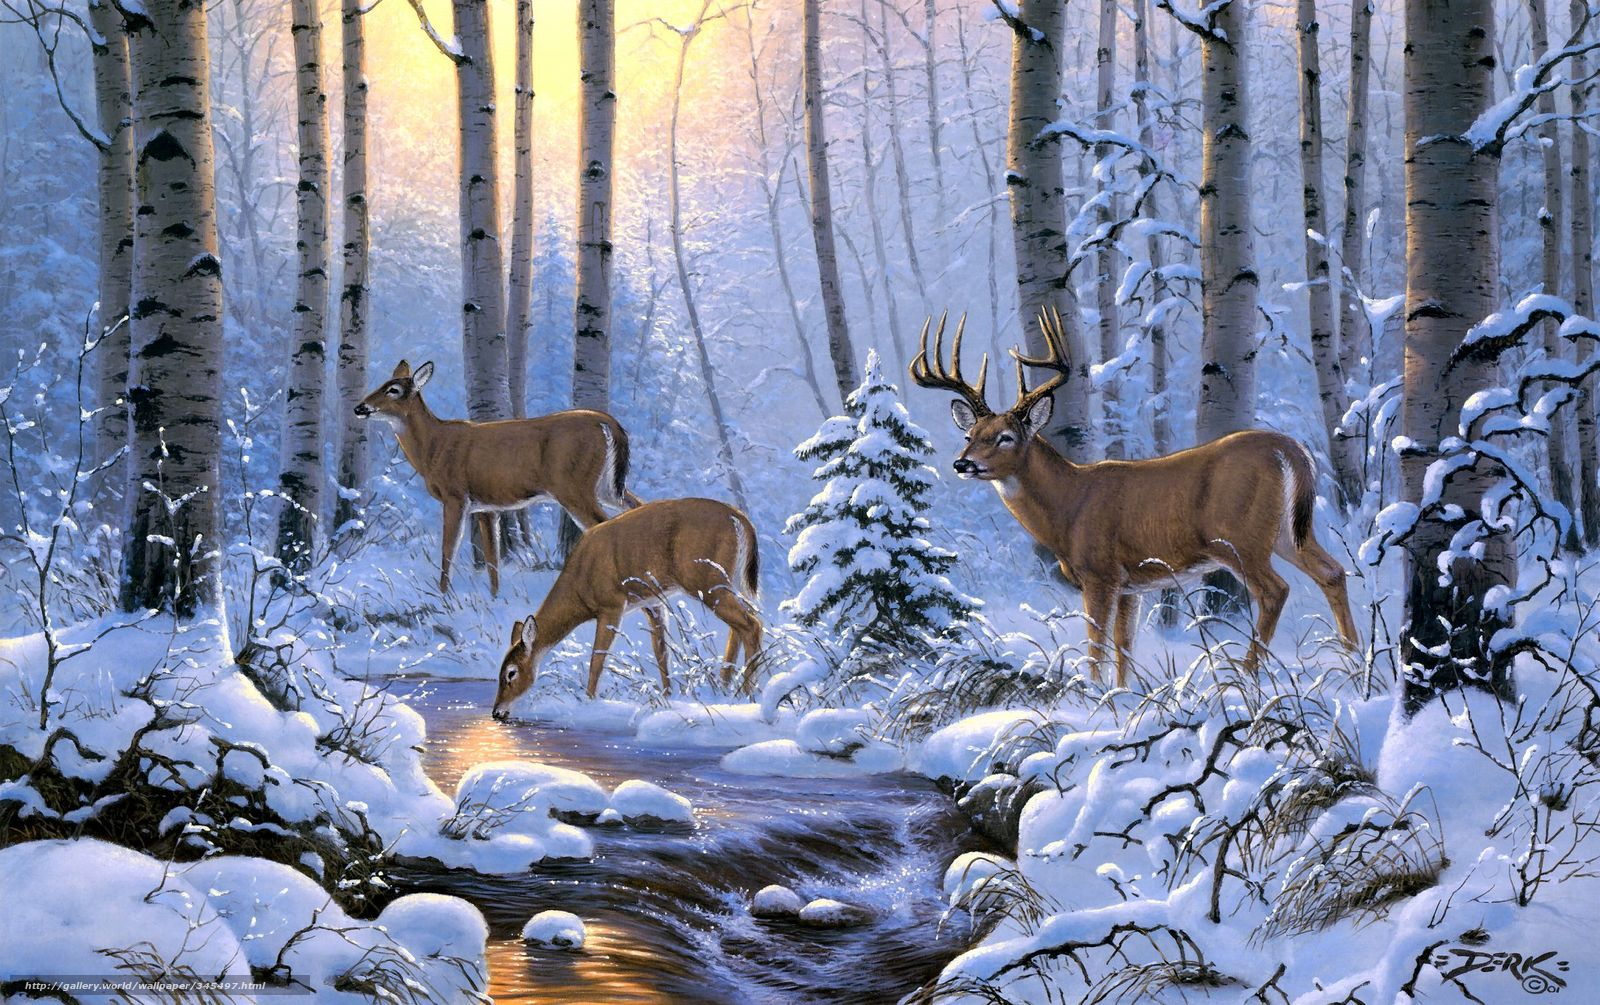 Download wallpaper derk hansen deer Winter forest desktop 1600x1005